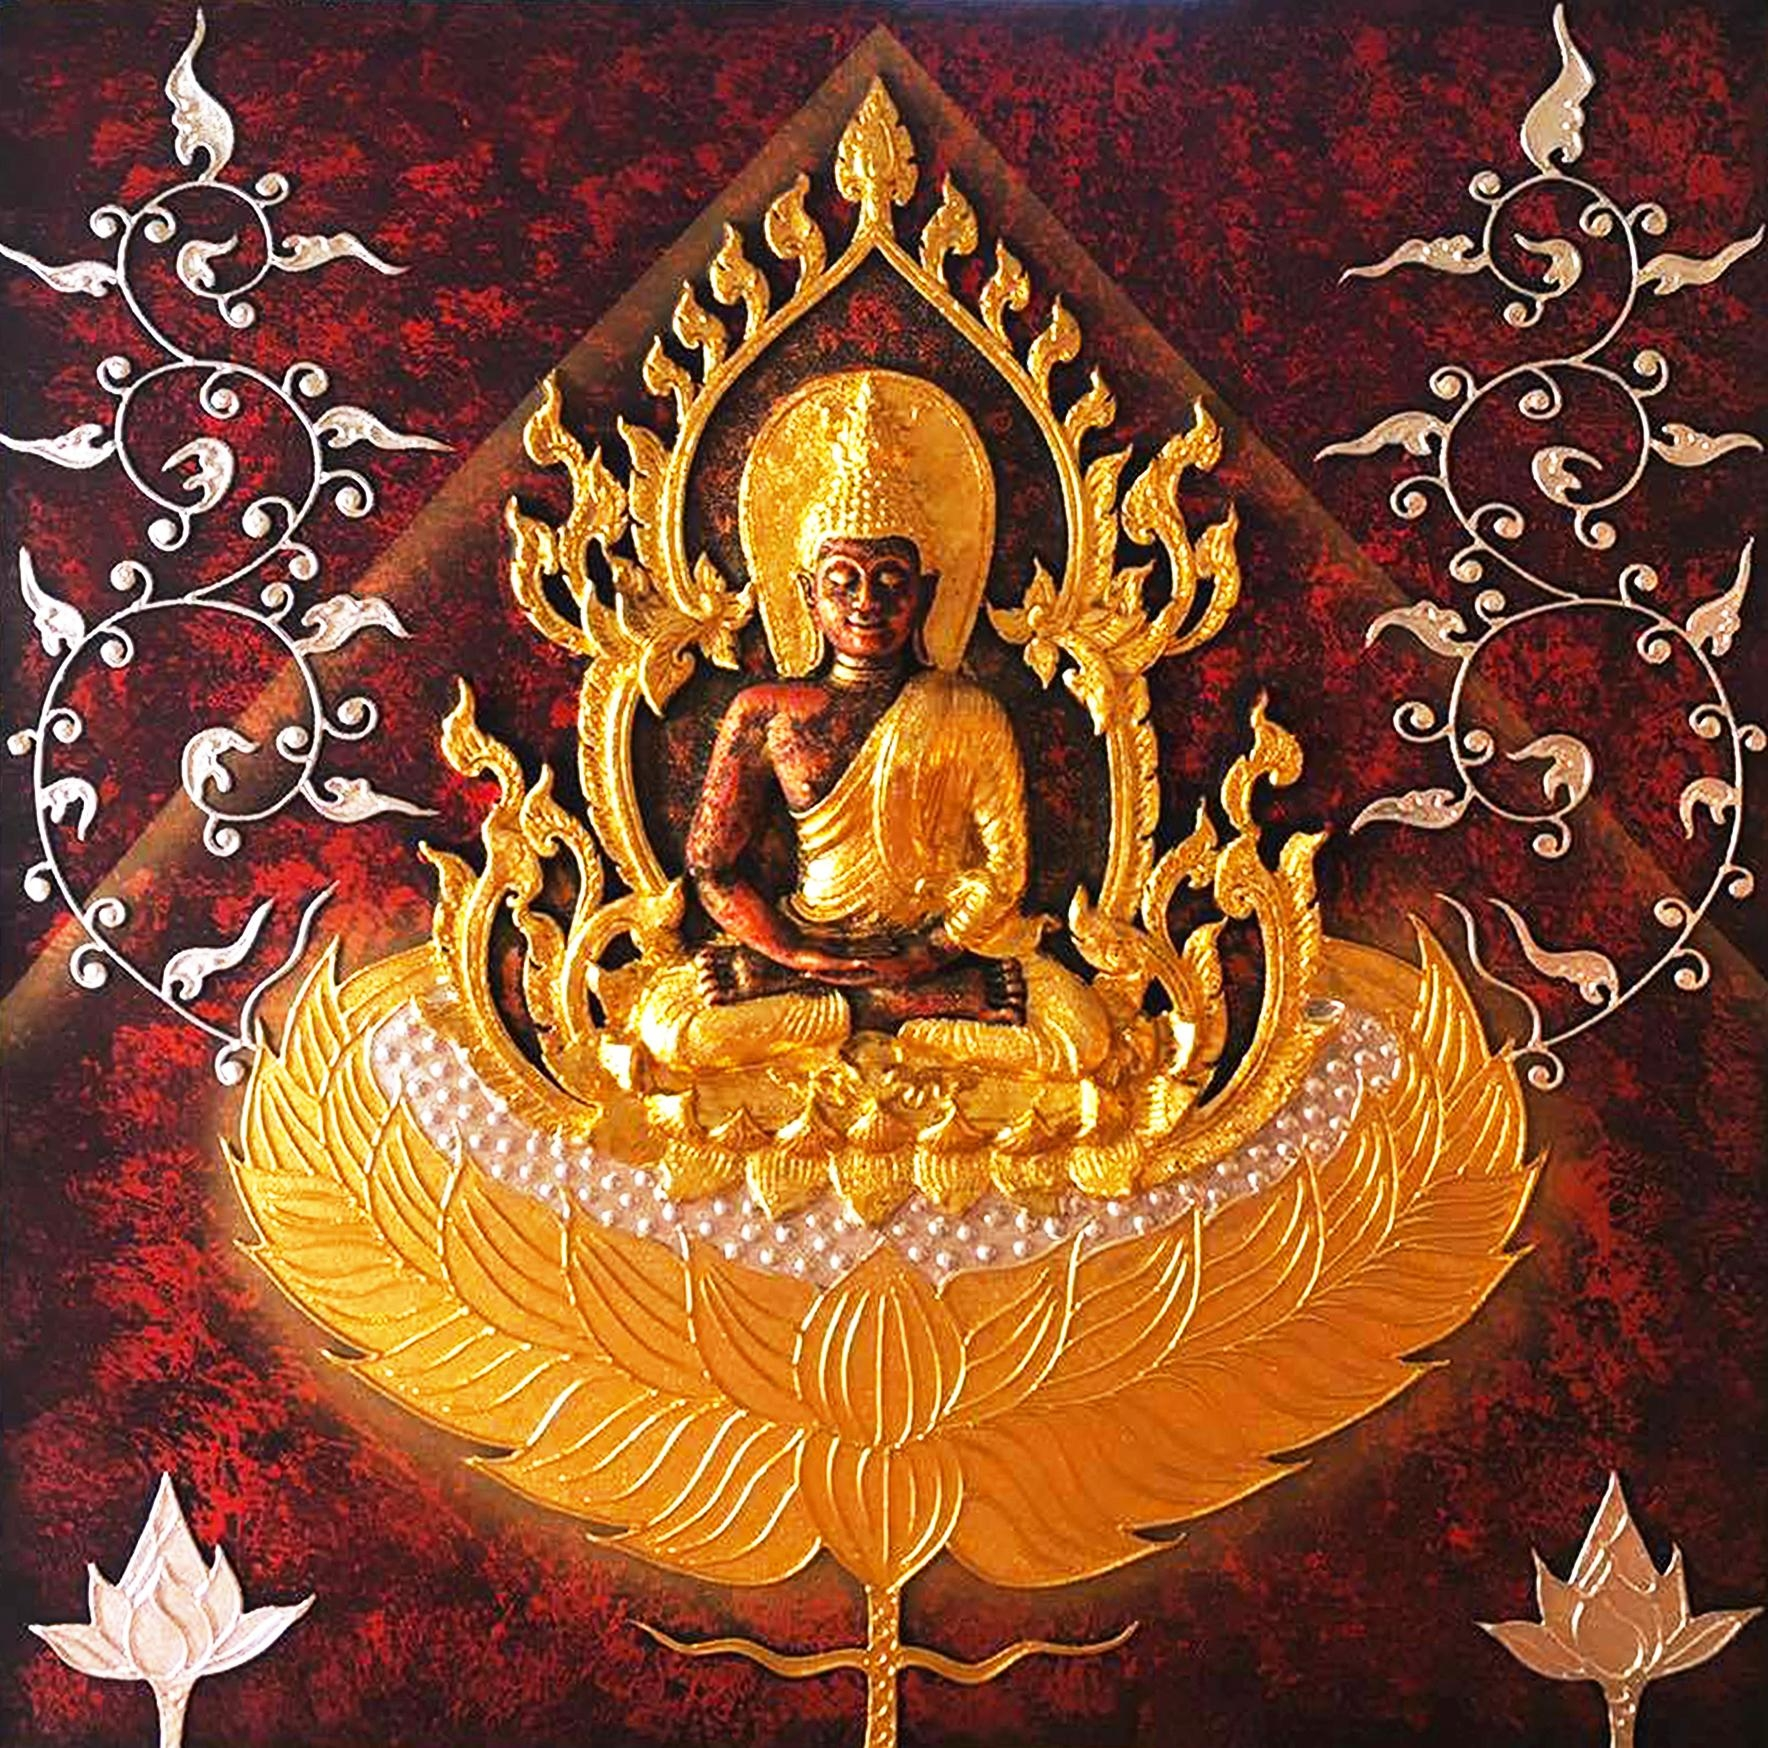 Buddha Painting 3D Handmade Gold Statue | Royal Thai Art With Buddha Wooden Wall Art (Image 5 of 20)